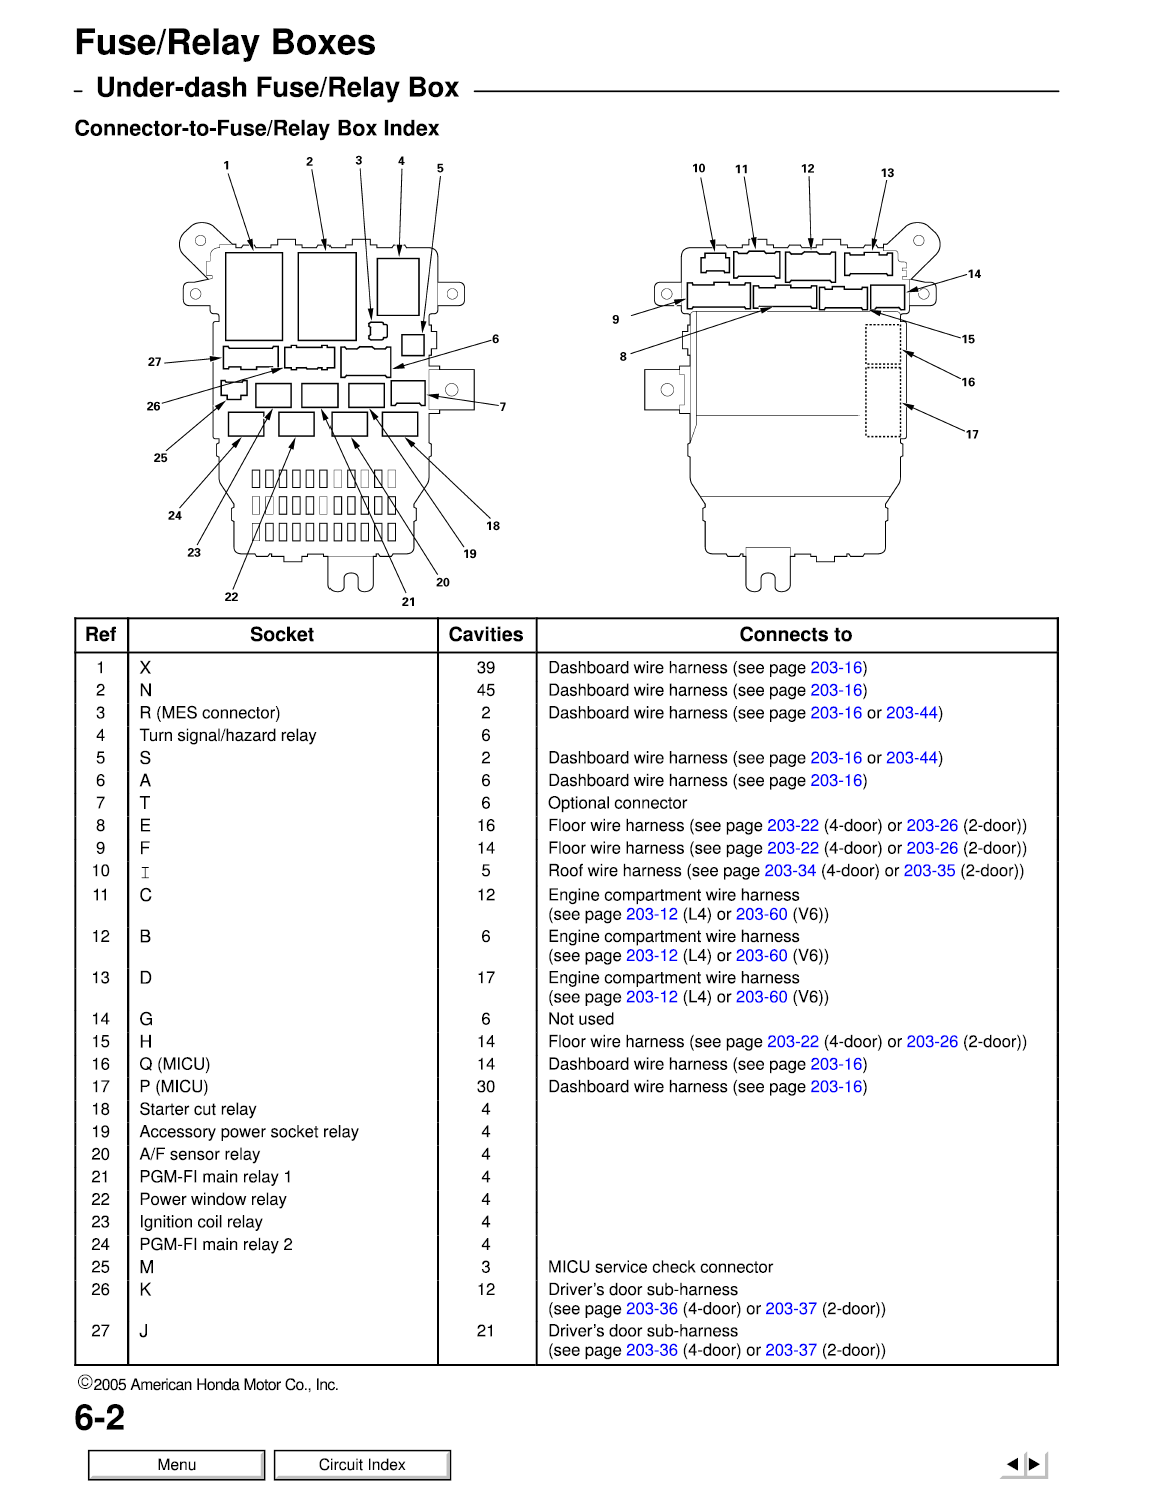 2006 honda fuse diagram wiring diagram data rh 19 6 2 reisen fuer meister de